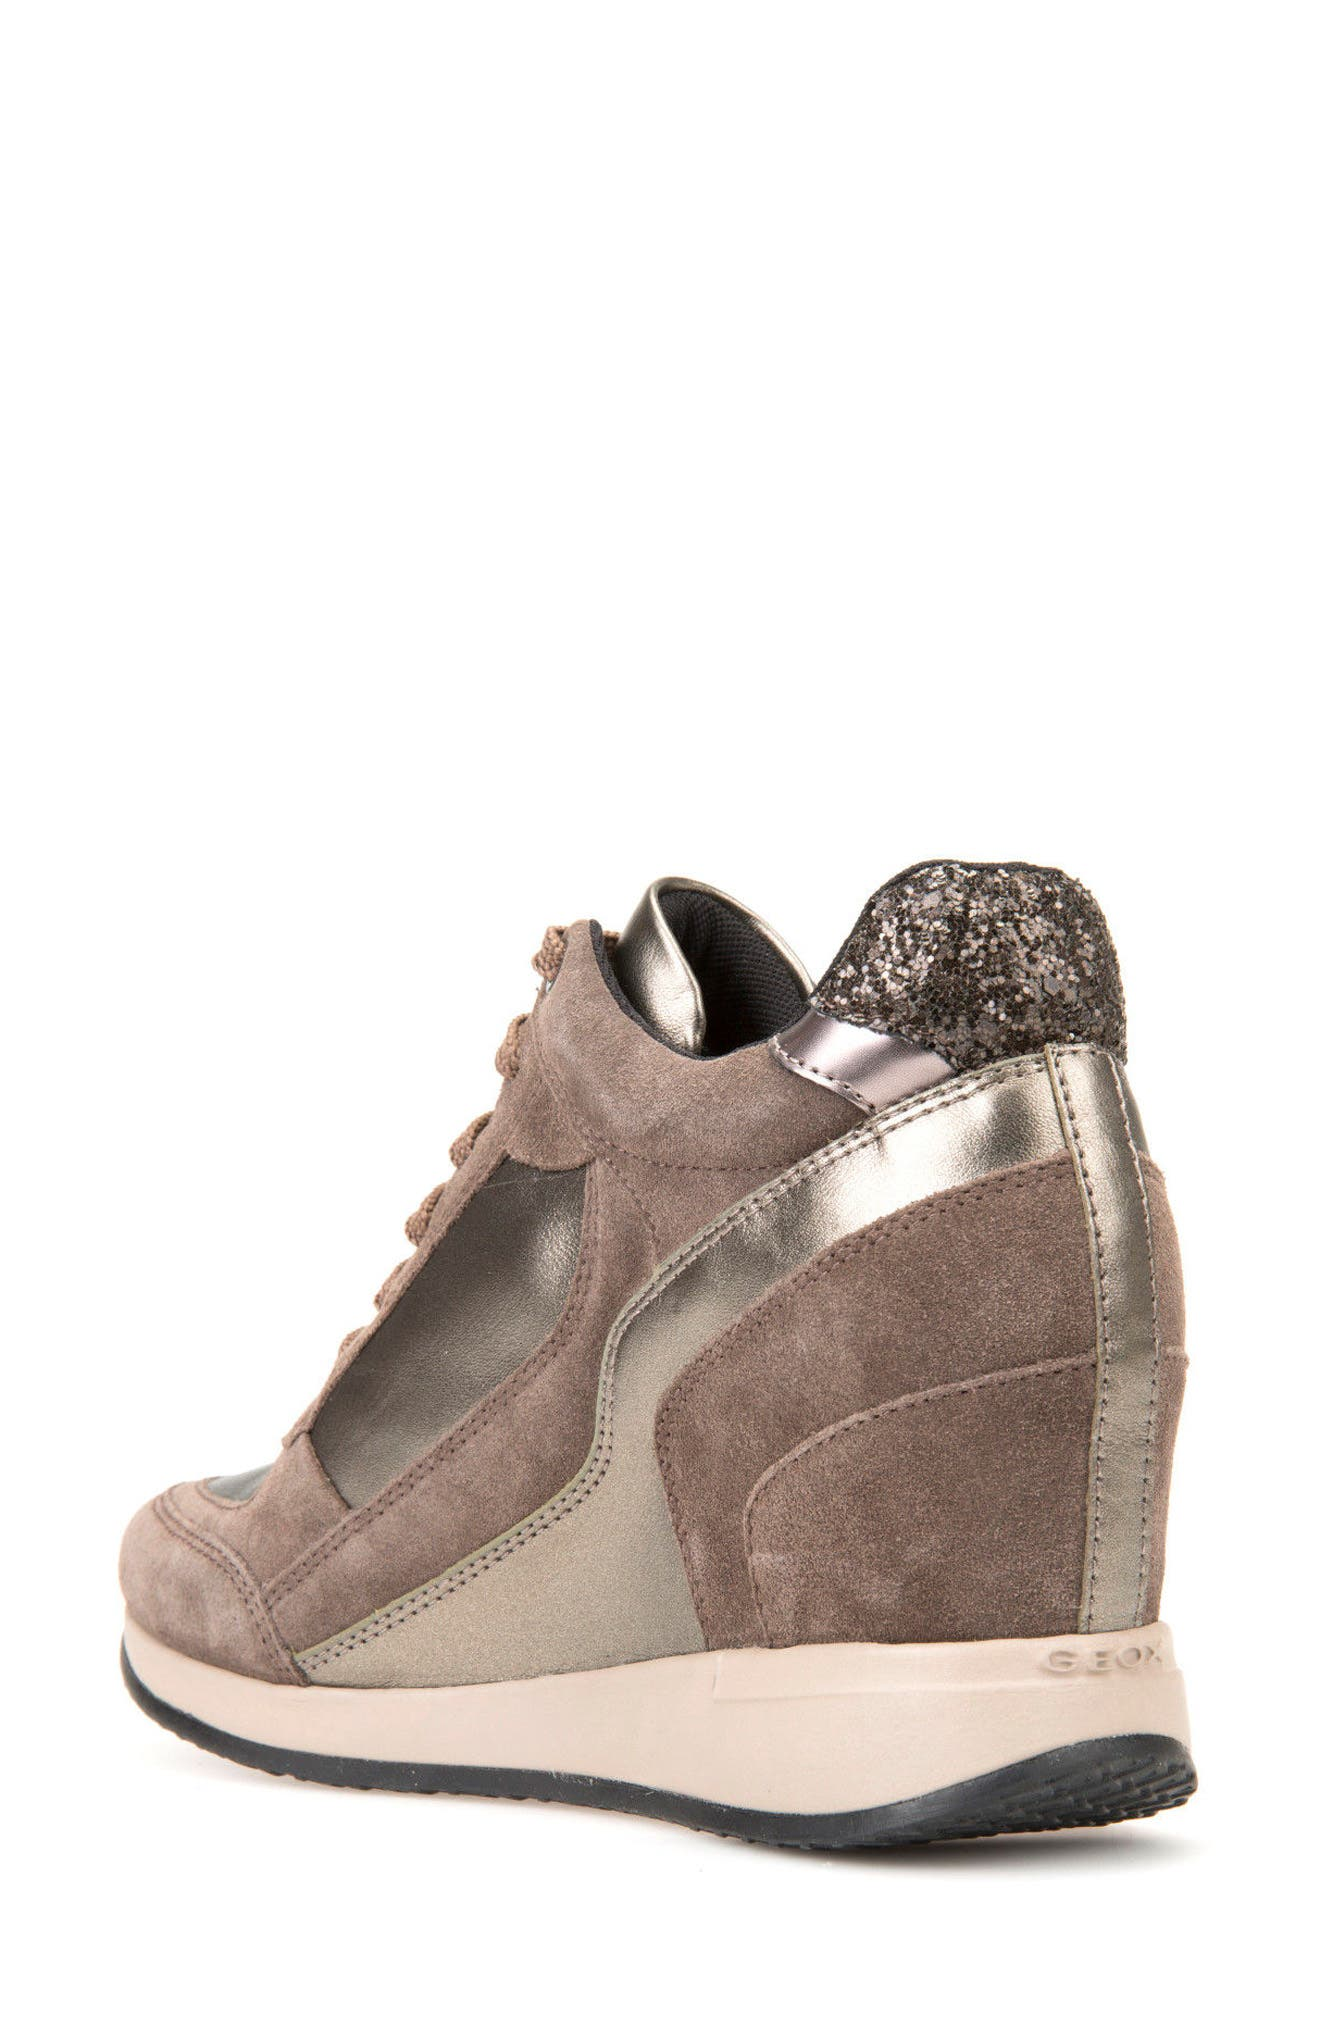 Alternate Image 2  - Geox Nydame Wedge Sneaker (Women)